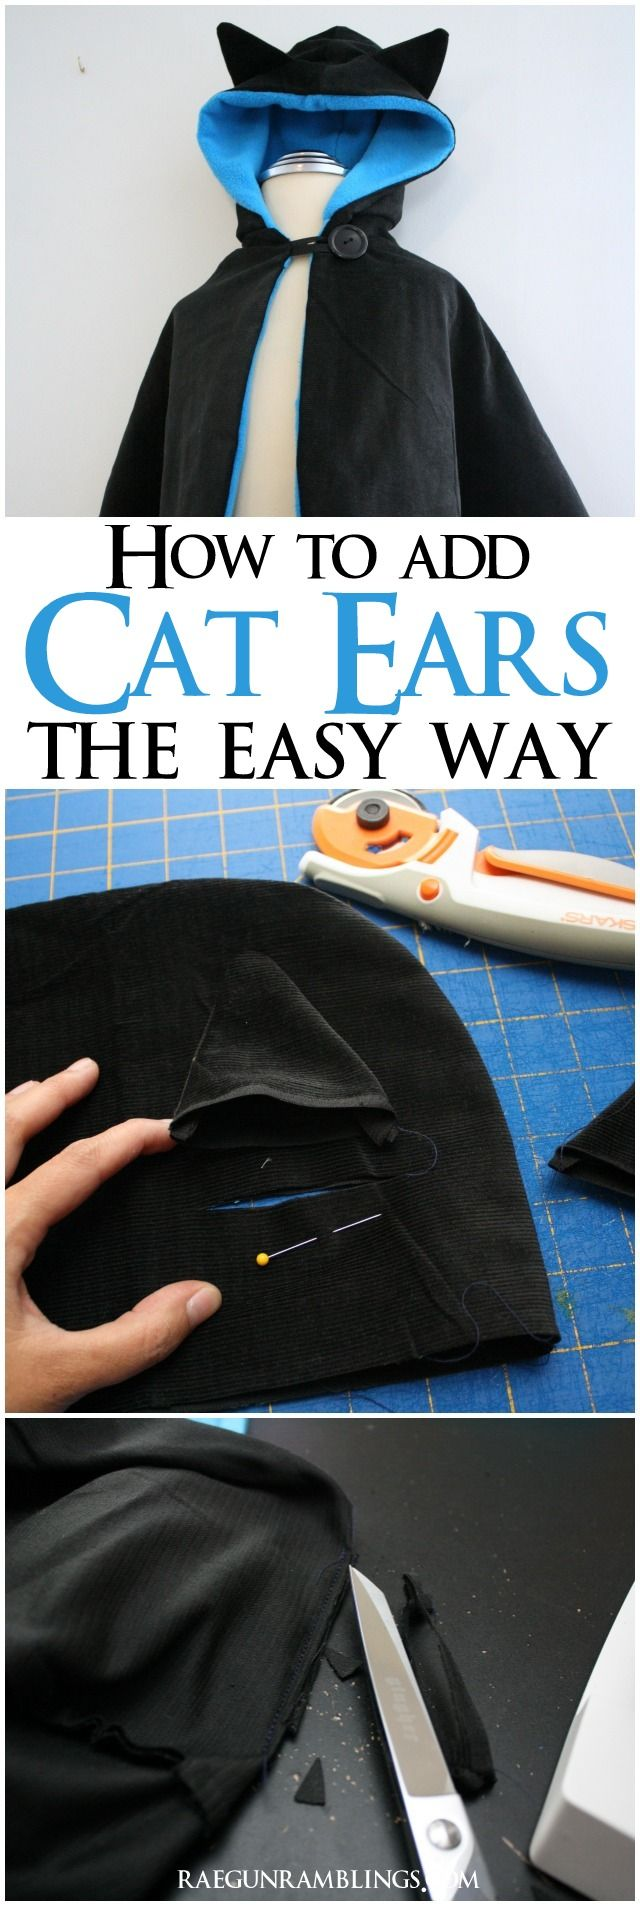 The fastest and easiest way to add cat ears to any hood - Rae Gun Ramblings